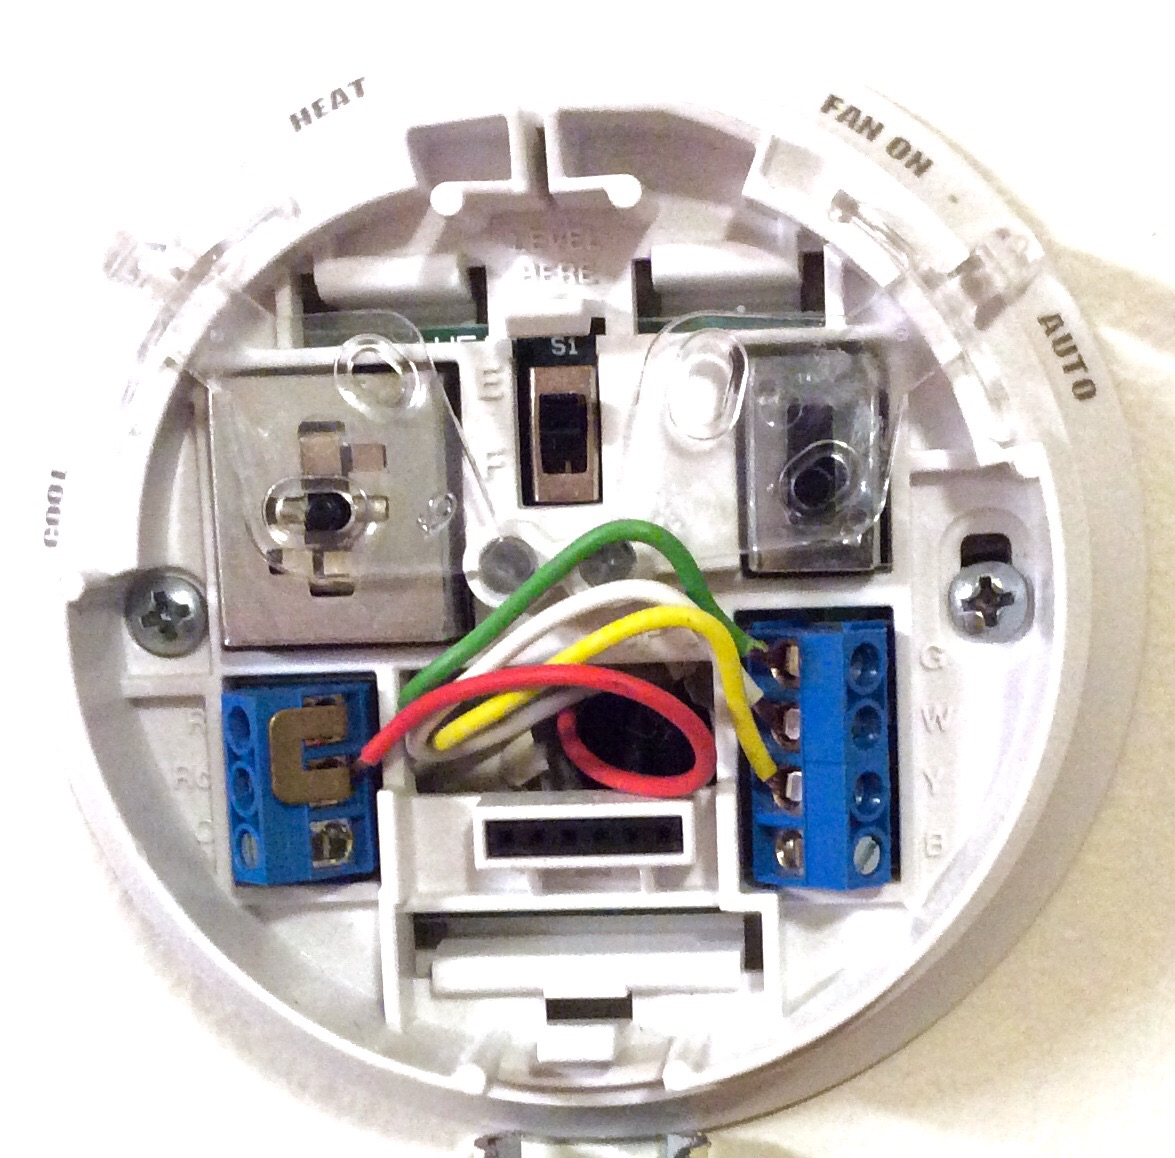 Honeywell Thermostat Wiring Diagram 4 Wire Toms Tek Stop Picture Of The Commonly Used Green White